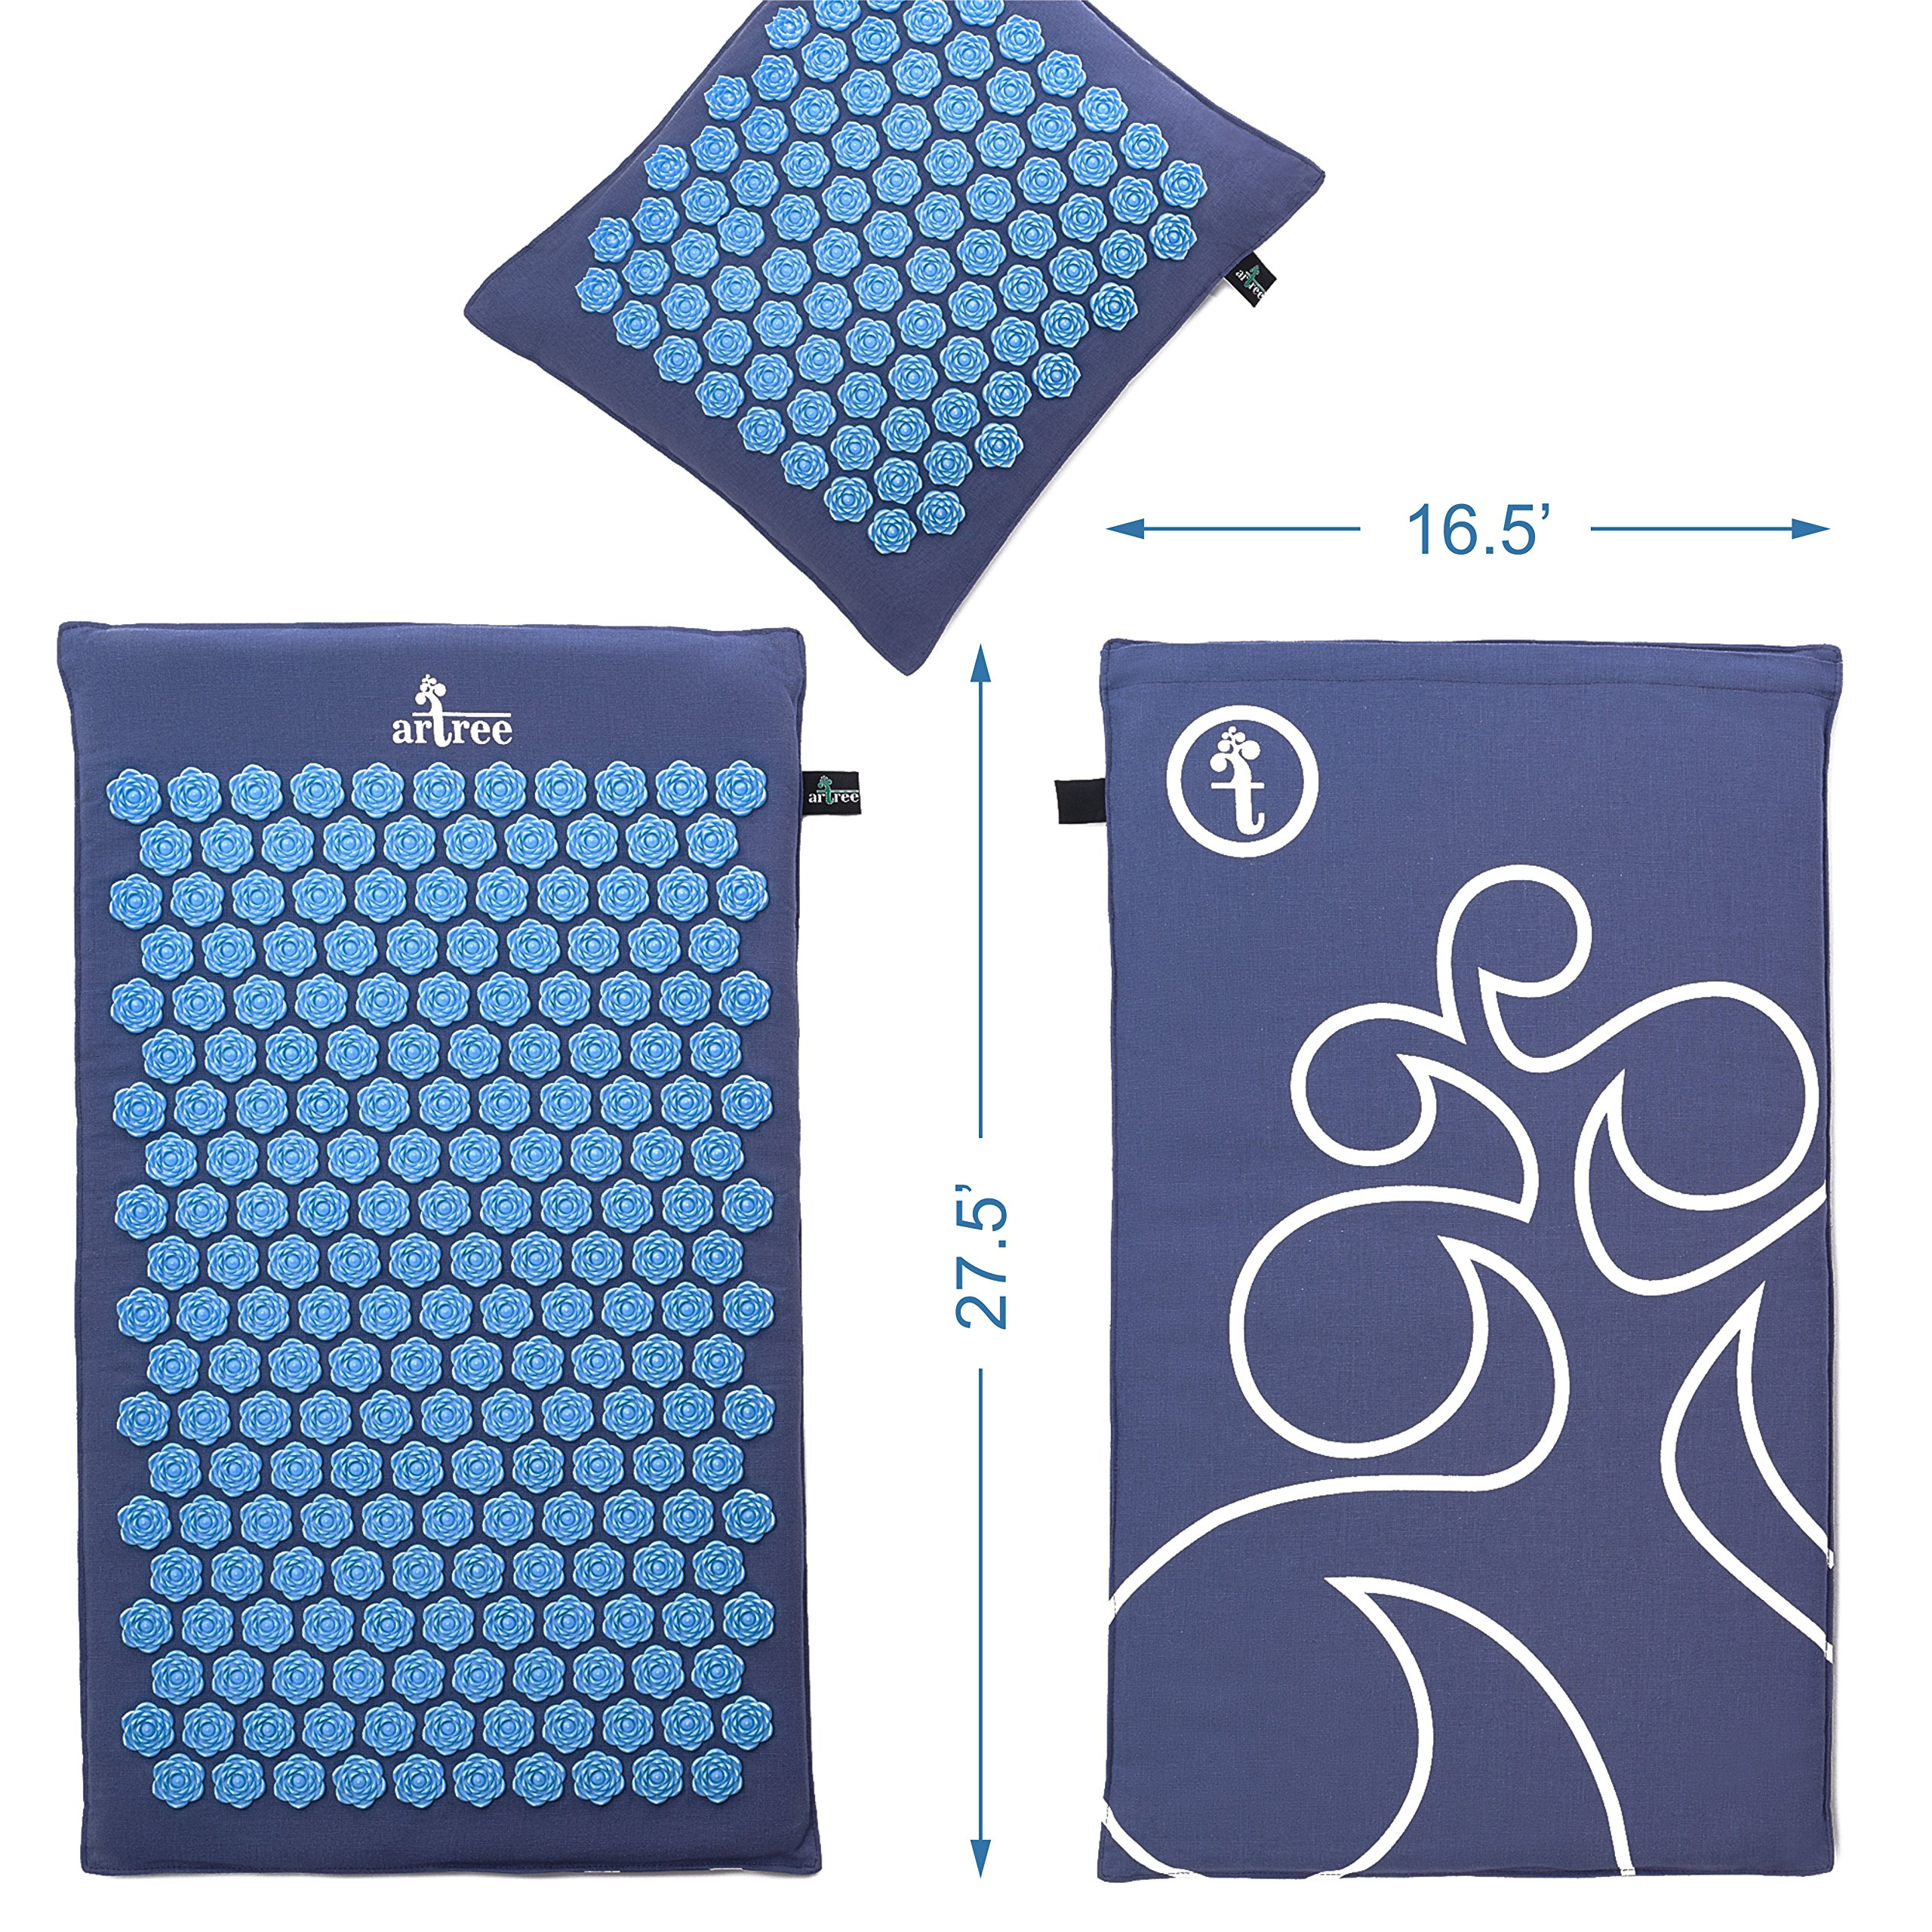 New Version Professional Acupressure Mat and Pillow Set Natural Linen – Best Acupuncture Mat Gift – Back And Neck Pain Relief Reflexology Mat – For Women And Men - Stress and Muscle Relief by Artree (Image #8)